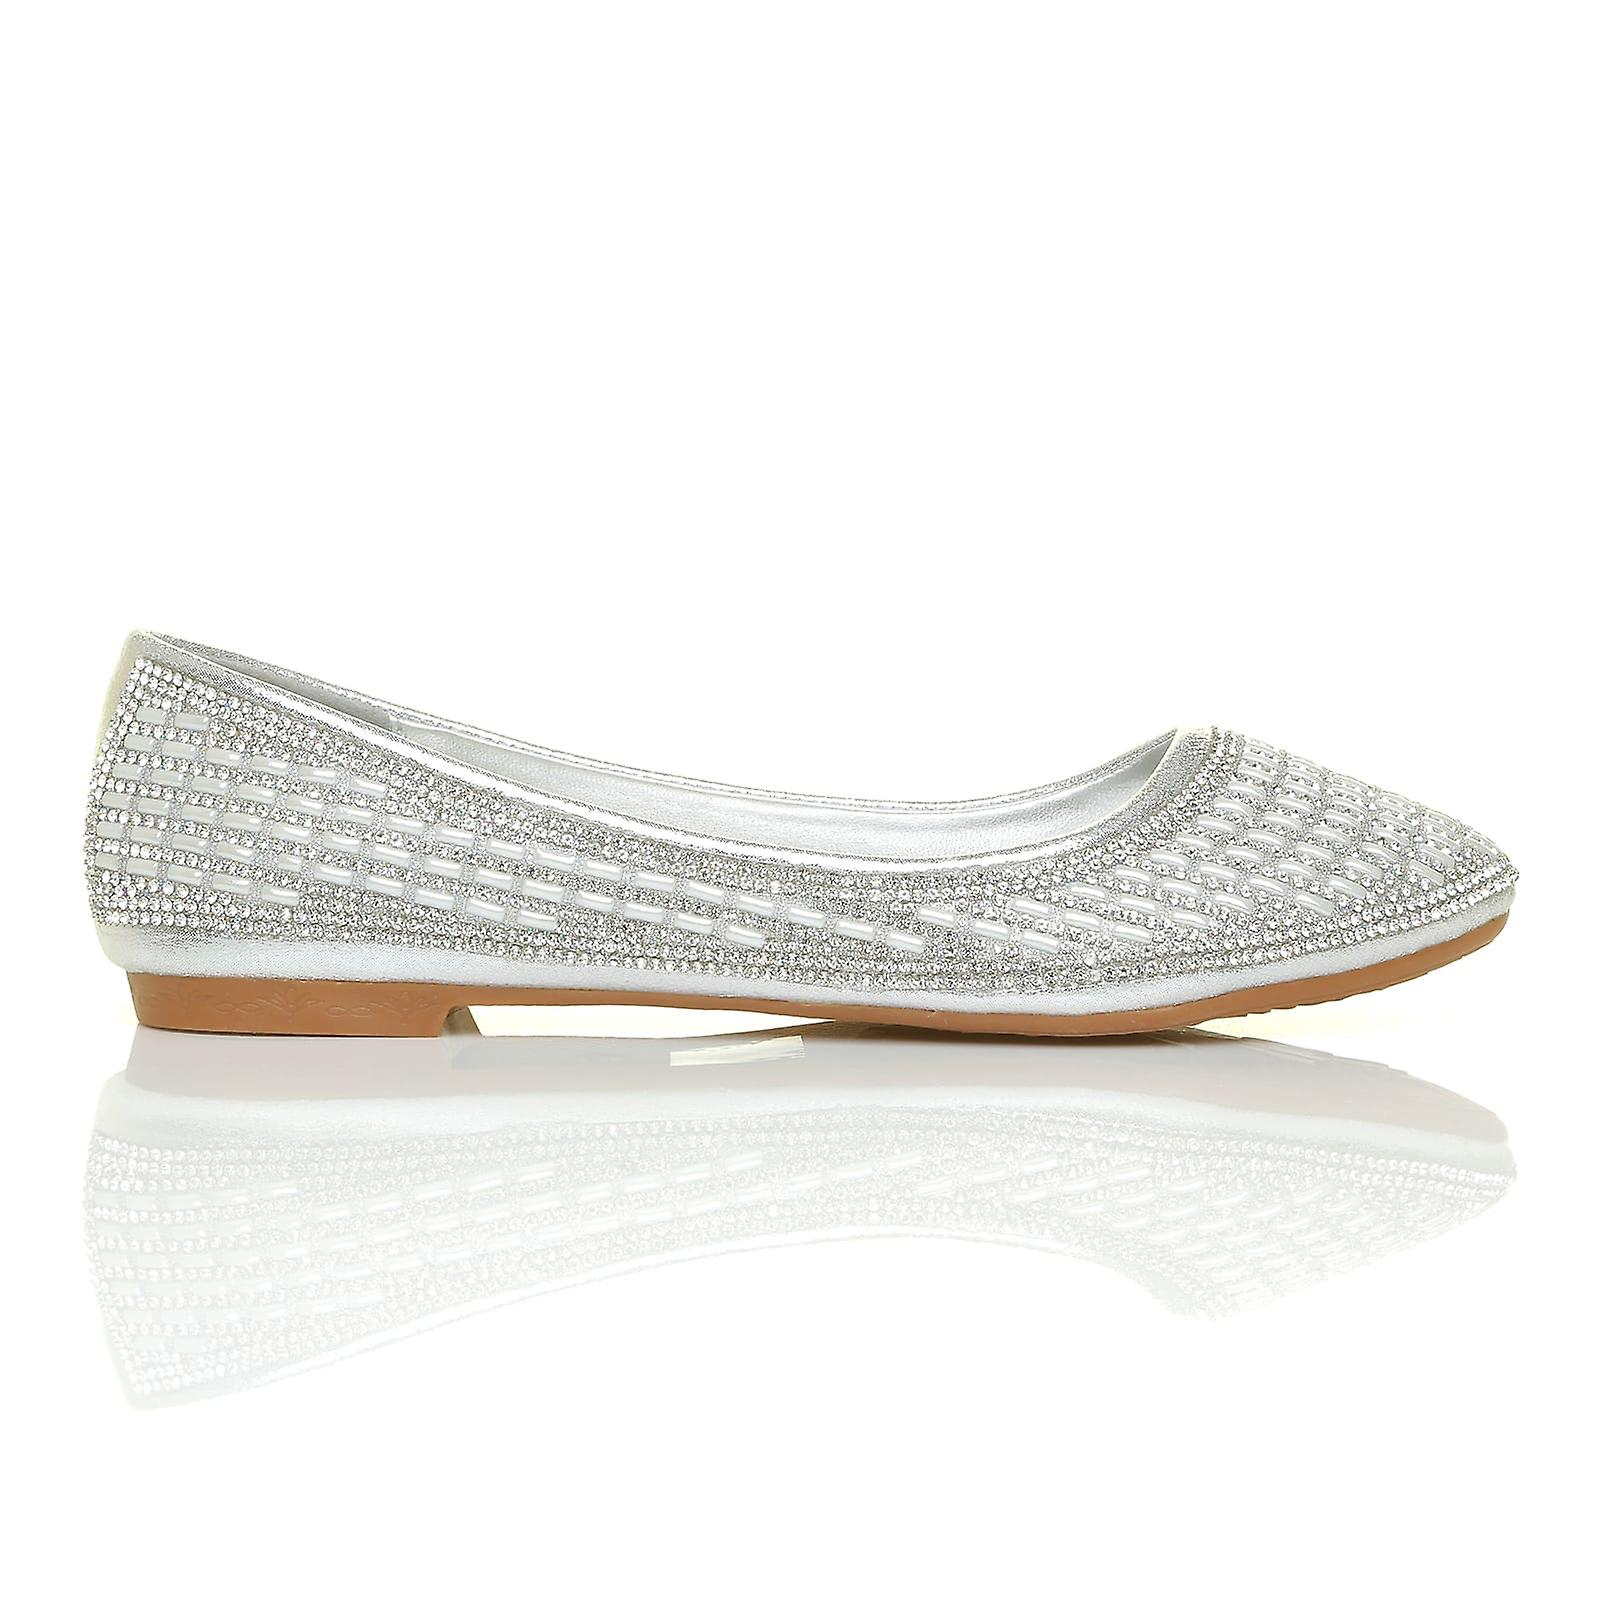 GILL Silver Shimmer Diamante Encrusted Flat Softie Ballerina Slip On Shoes